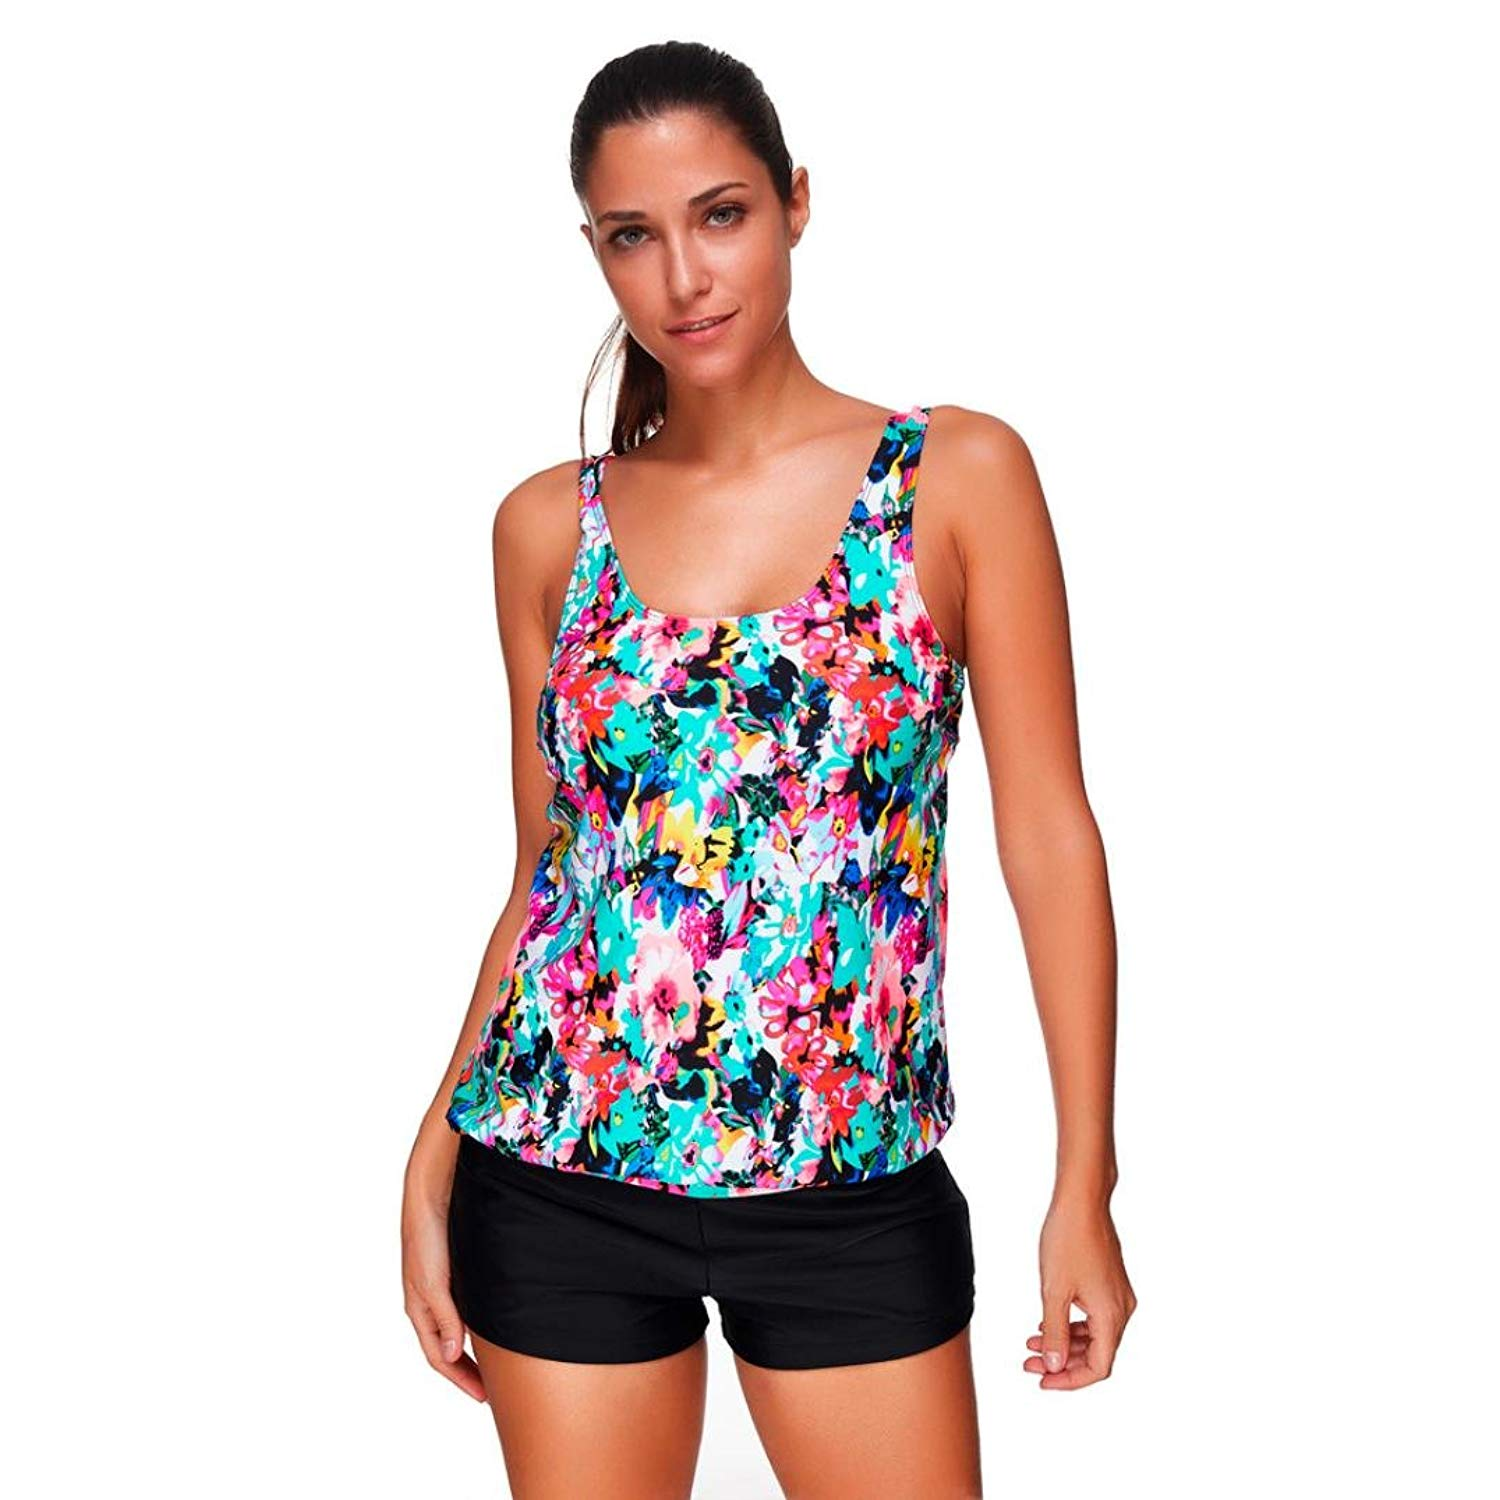 612b22bcde40d Get Quotations · Auwer Women Tankini Sets With Boy Shorts Ladies Swimwear  Two Piece Swimsuits